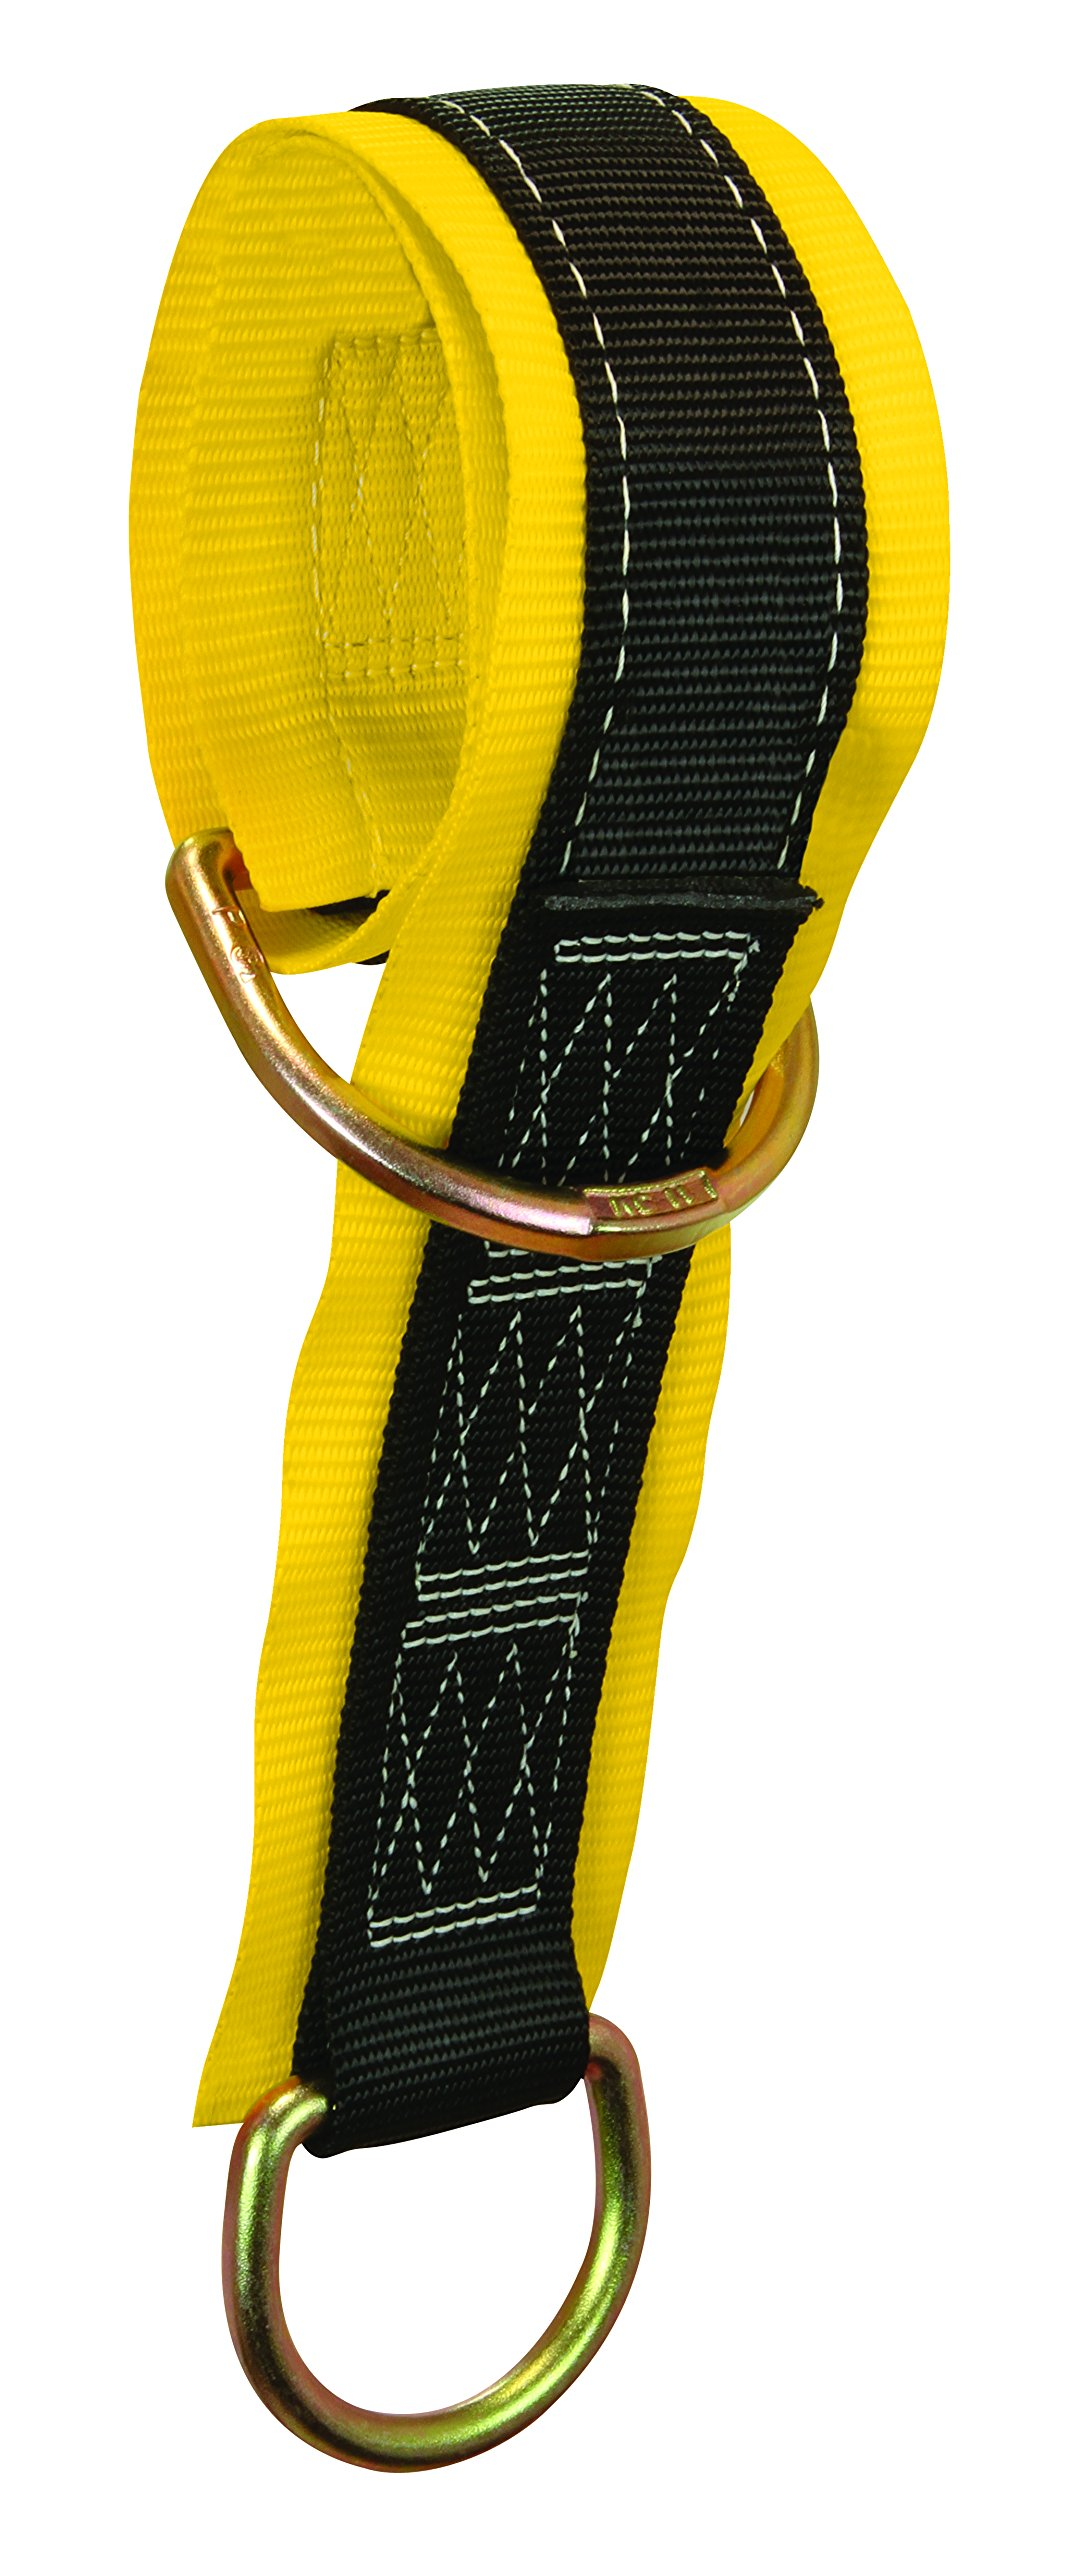 FallTech 7372 Pass-Thru Web Anchor Sling, 6-Foot by FallTech